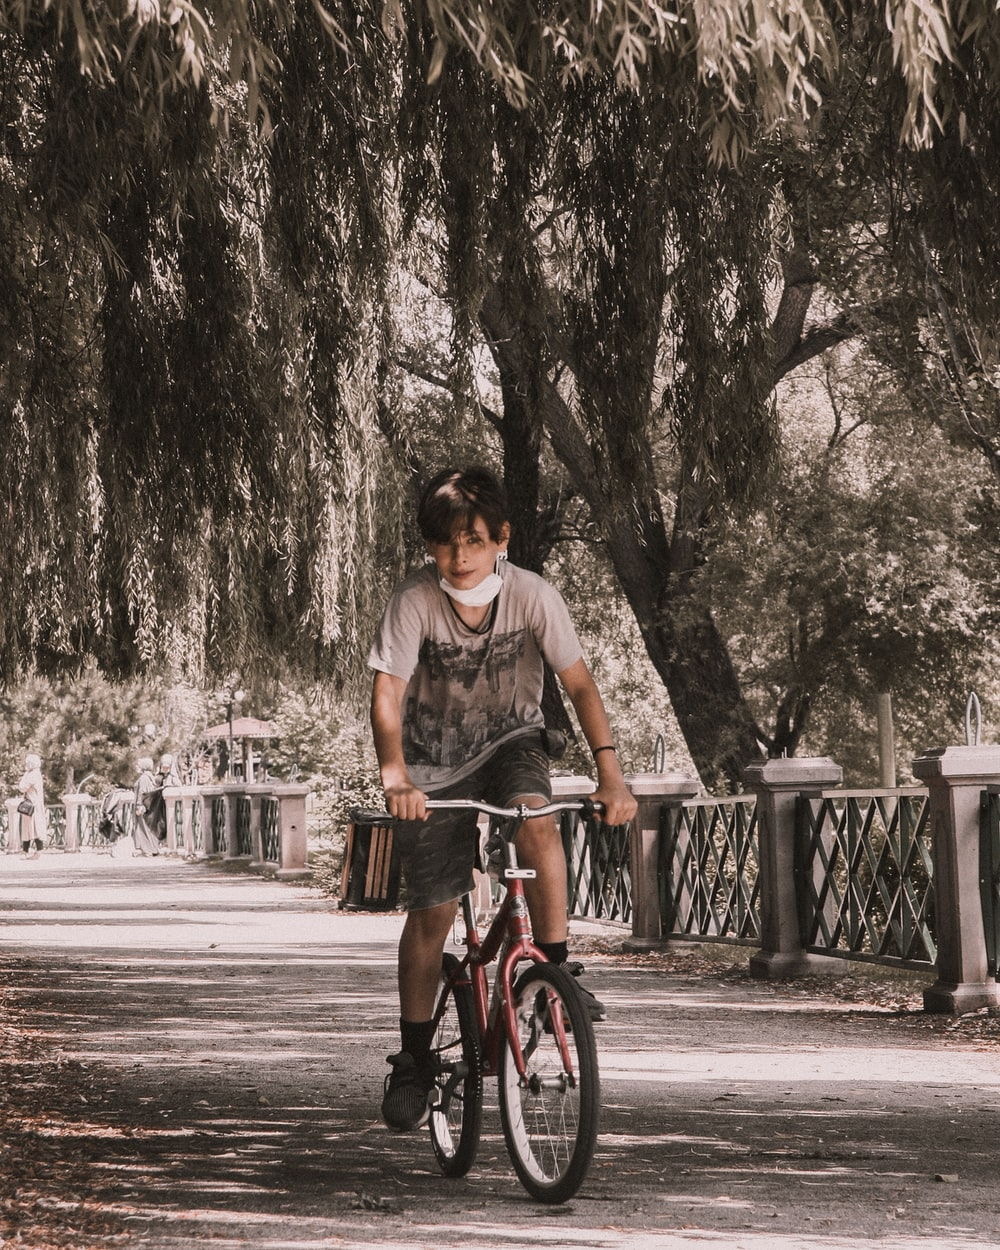 woman in black tank top riding bicycle on road during daytime